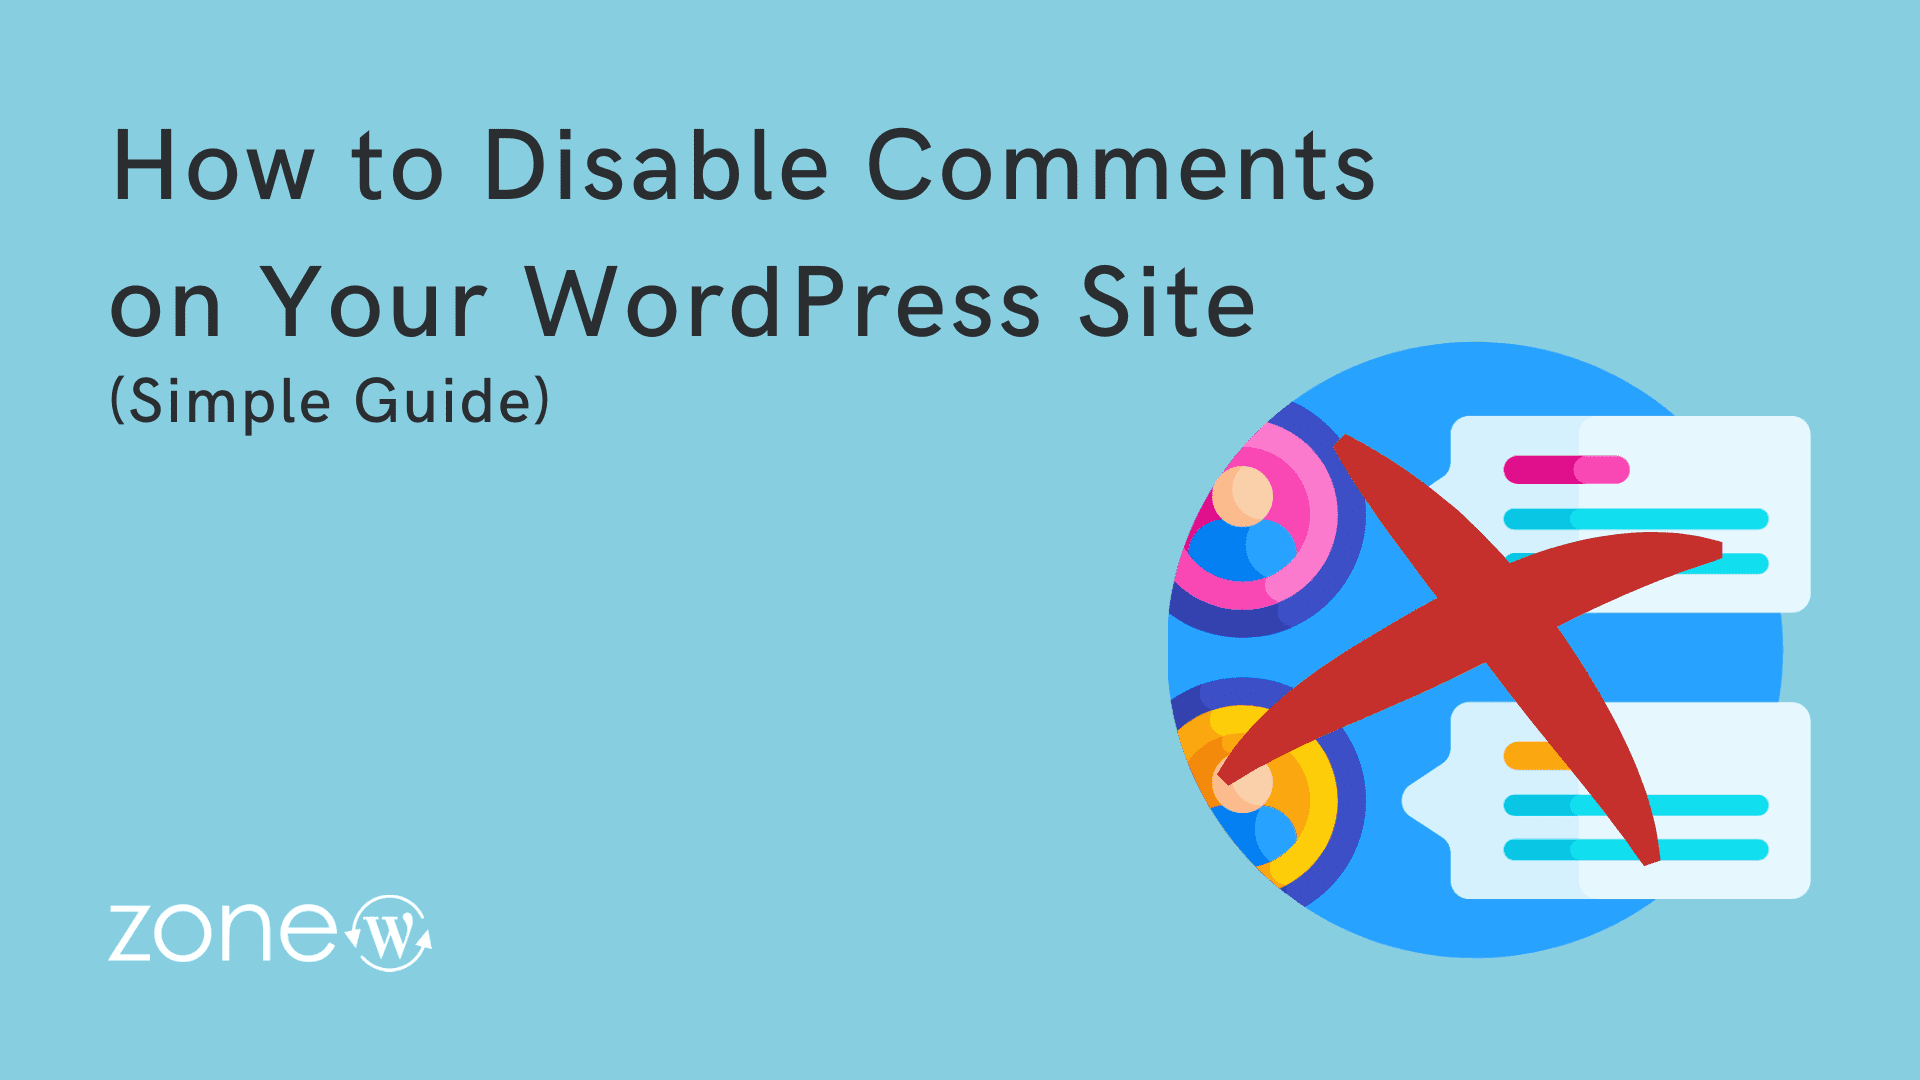 How to Disable Comments on Your WordPress Site (Simple Guide)